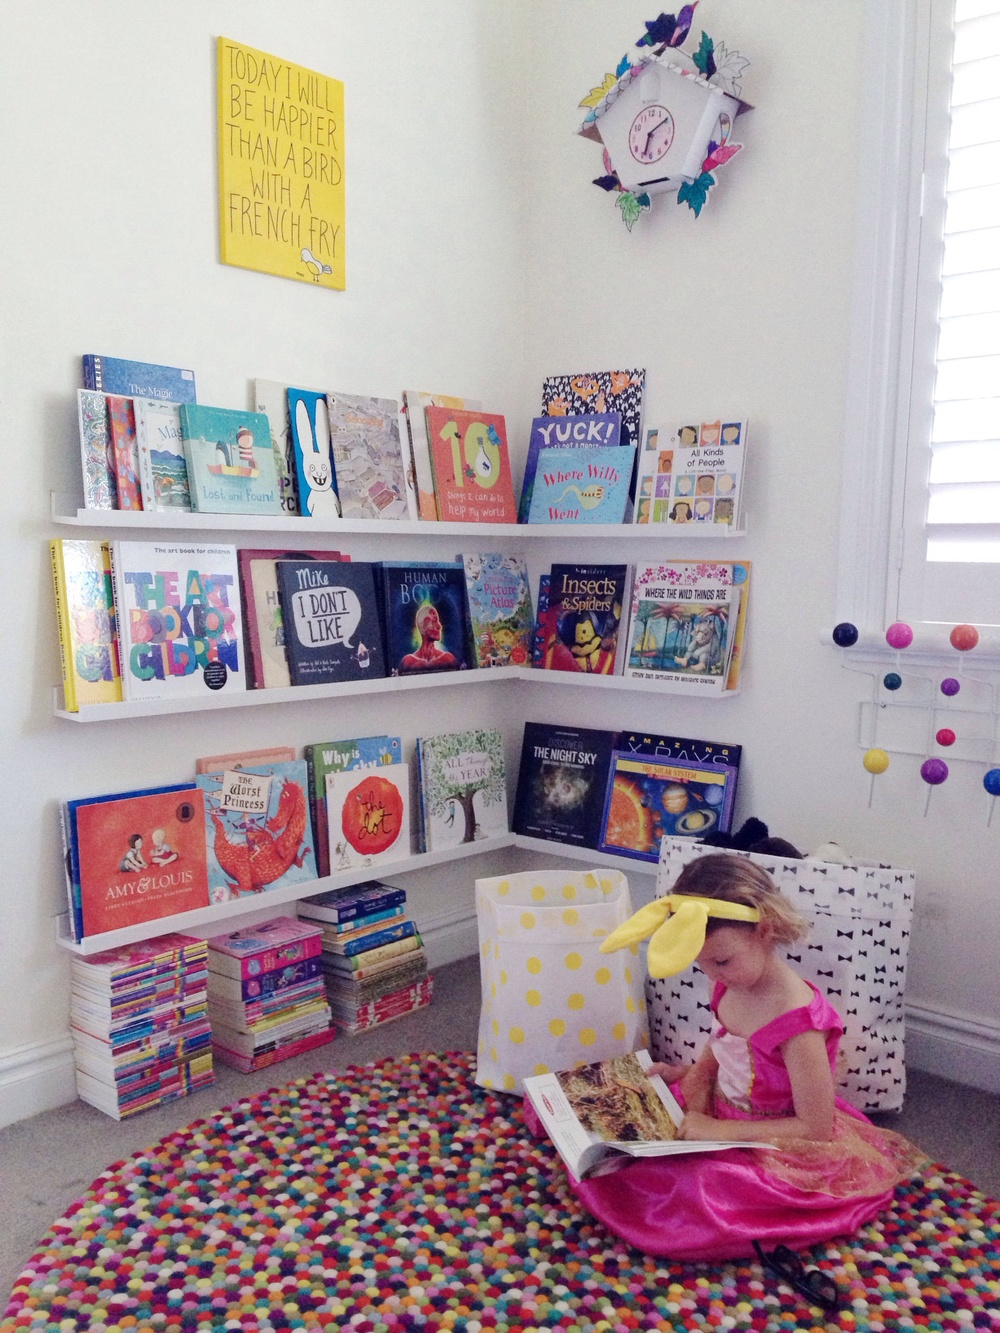 Lovely Izzy enjoying her new reading area. Eva was at school the day we popped past for photos.